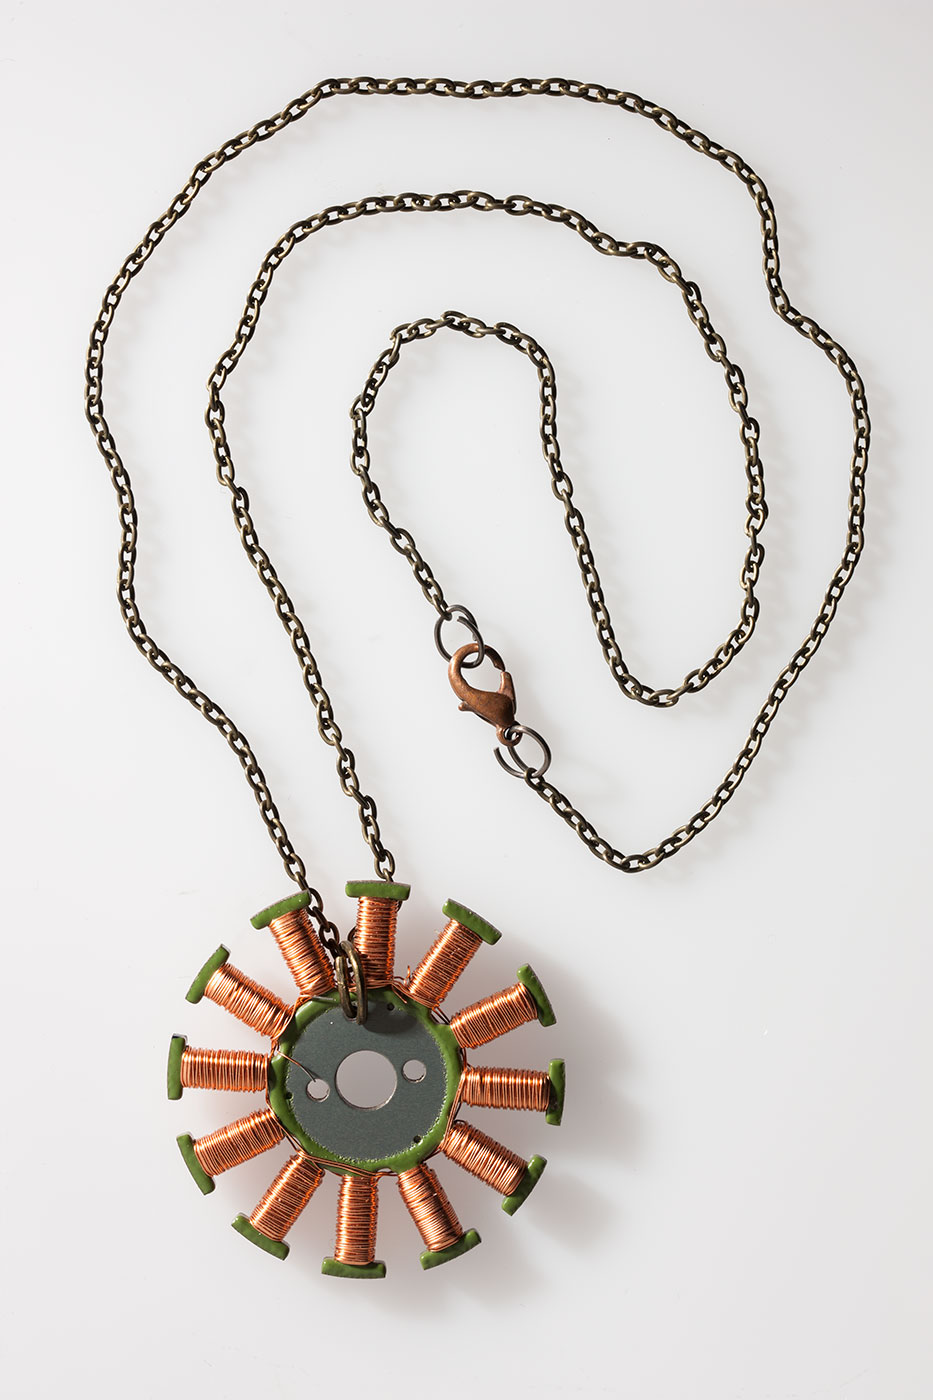 A circular metal pendant with green coloured t-shapes coiled with copper wire radiating from the centre, on a metal chain. - click to view larger image